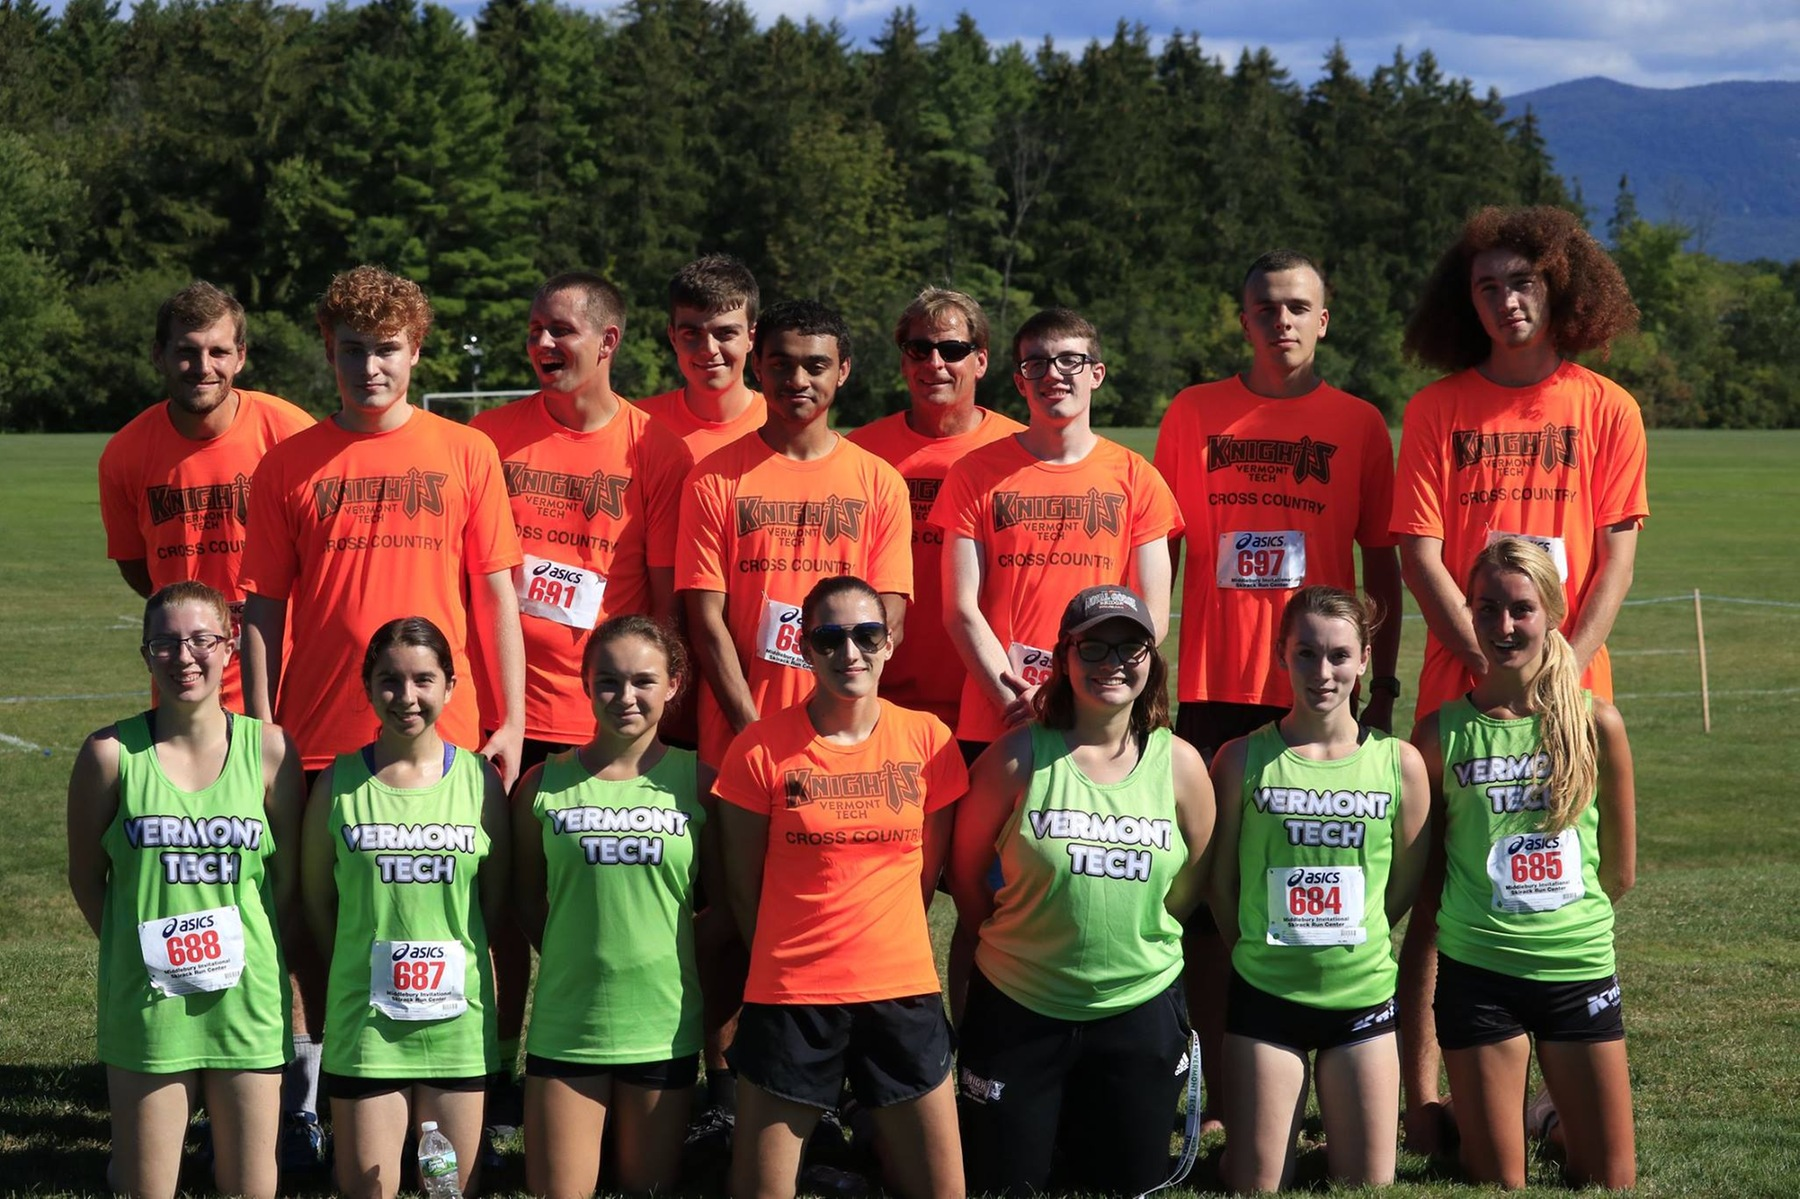 Cross Country teams compete at Middlebury